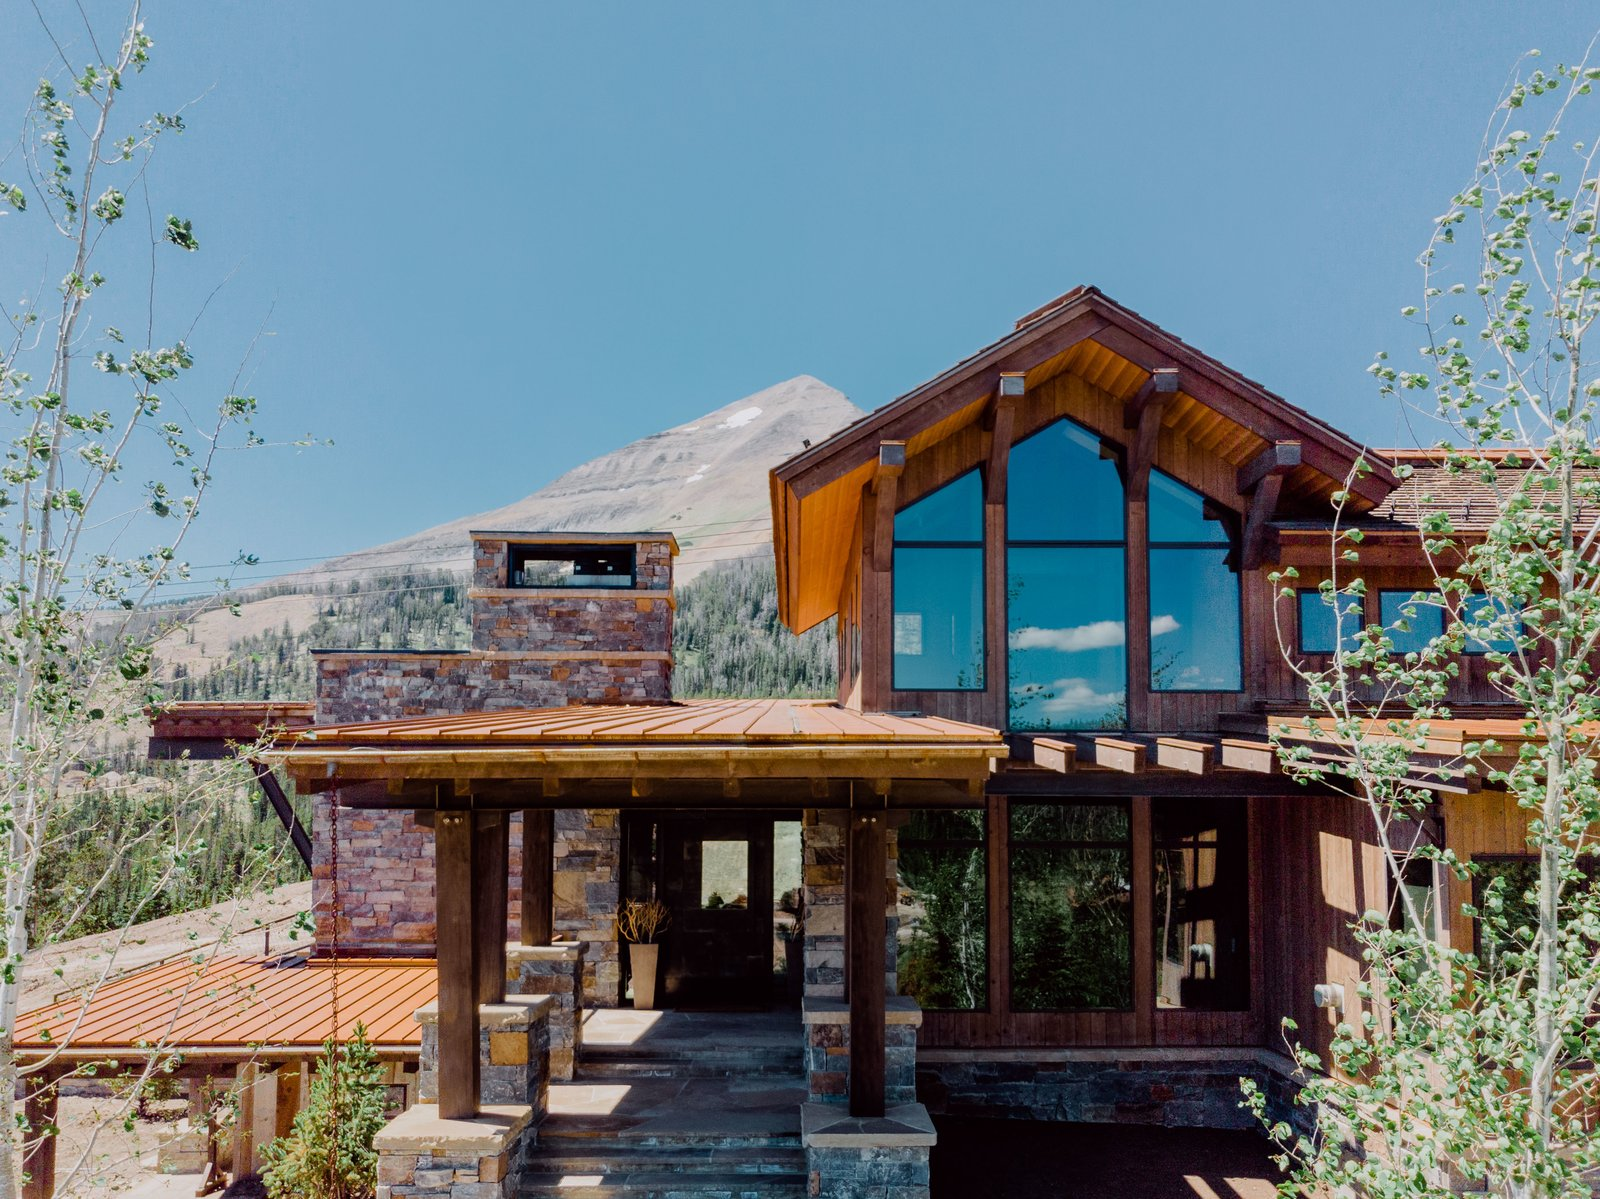 Exterior, House Building Type, Gable RoofLine, Stone Siding Material, and Wood Siding Material  Photo 1 of 12 in A Mountain Retreat in Montana Allows One Couple to Live in the View